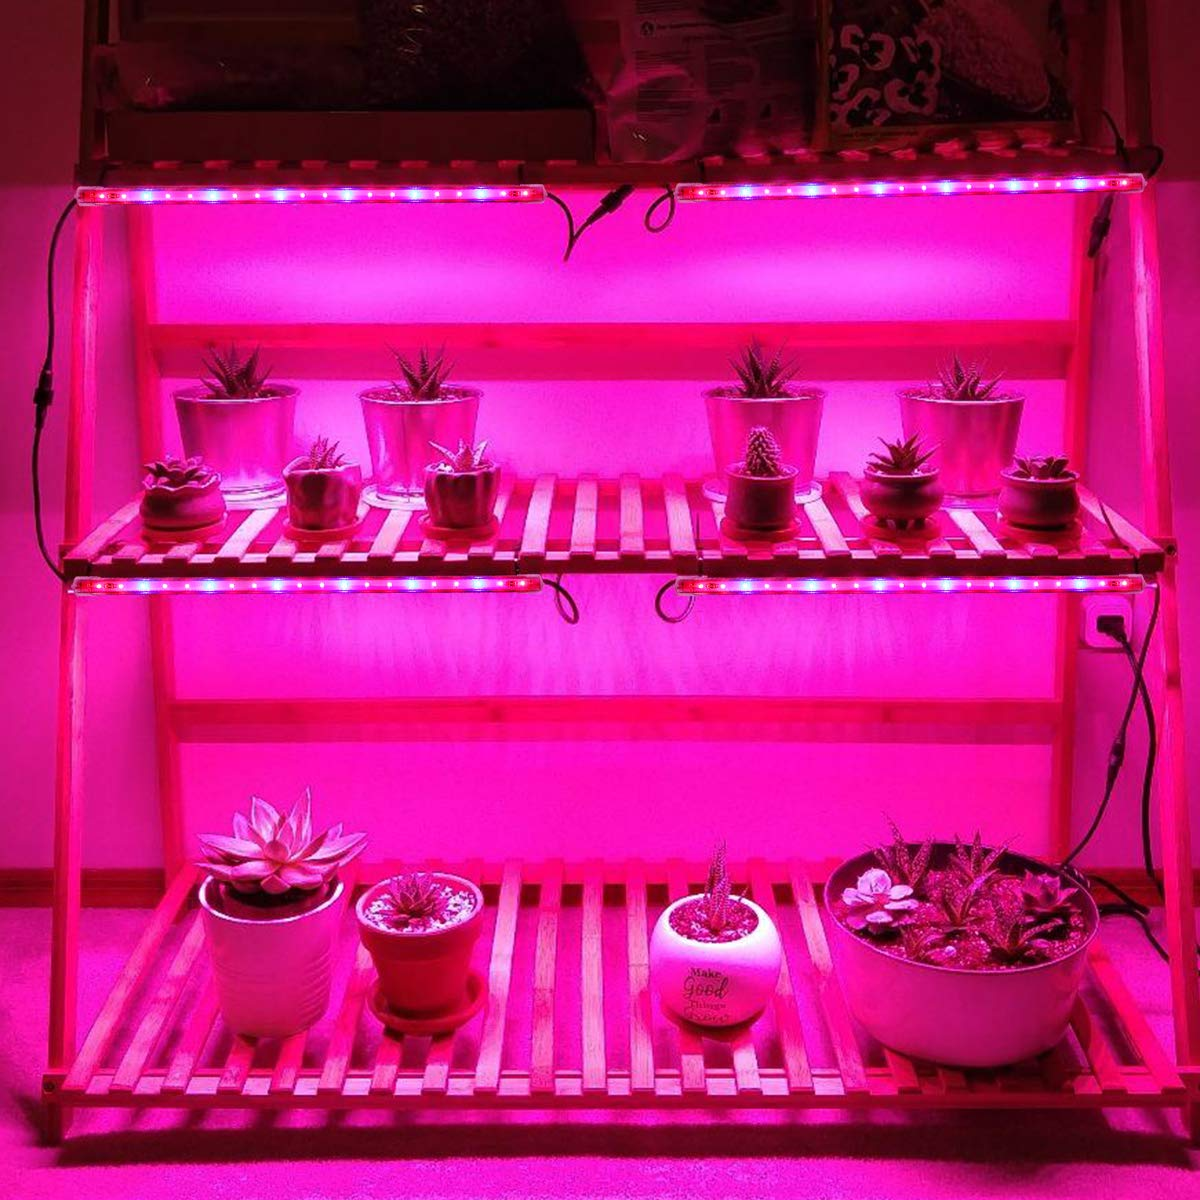 2 Pack LED Grow Light with Timer, 20W T5 Grow Lights Strip Plant Light Grow Lamp Bar 4 Levels Brightness Dimmable for Indoor Plants Tent Greenhouse Gardening Hydroponics Veg Flower Seedlings 61zNThqtcUL